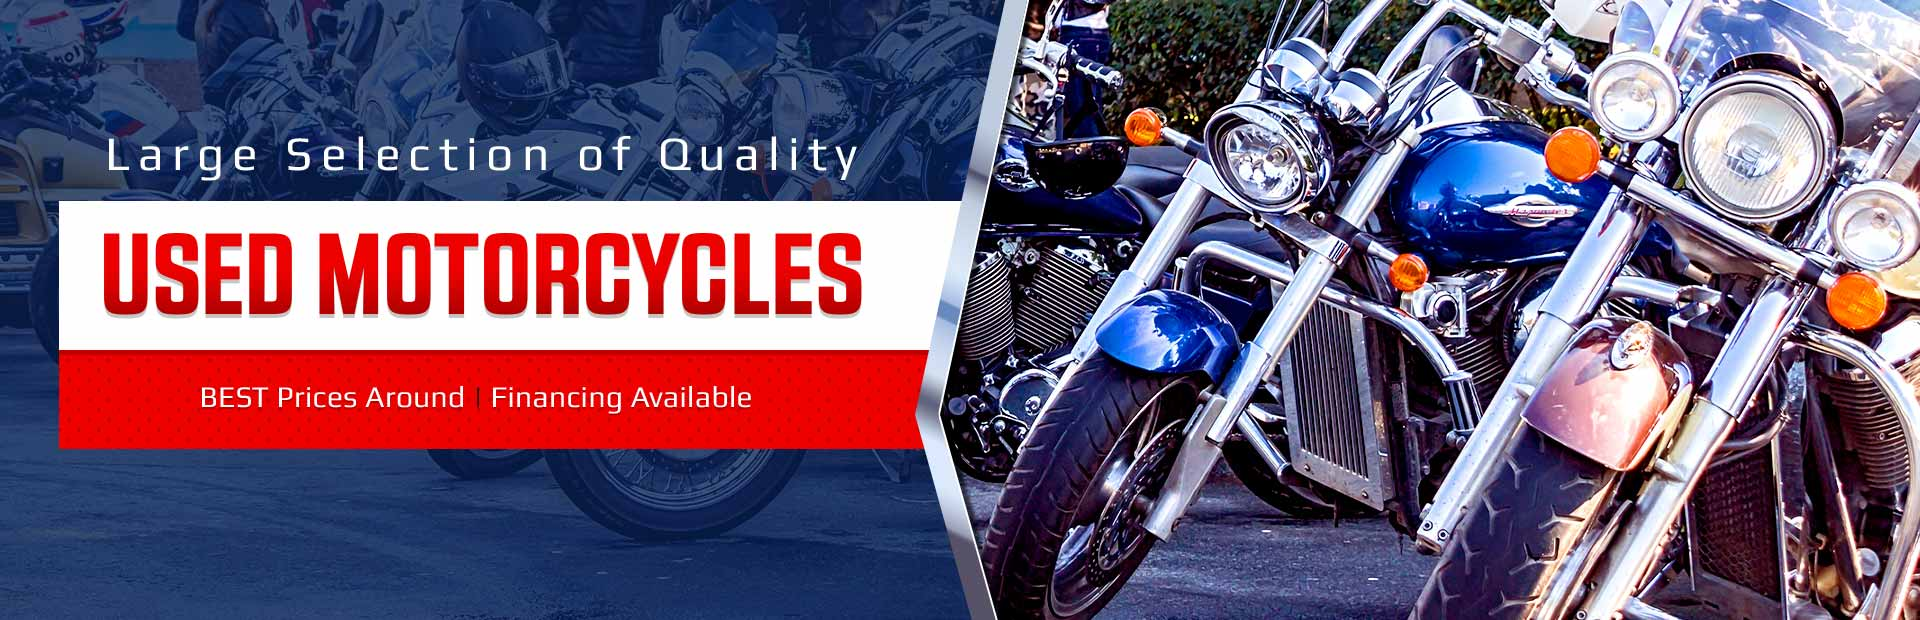 Large Selection of quality used motorcycles. Best Prices Around | Financing Available. Click here to